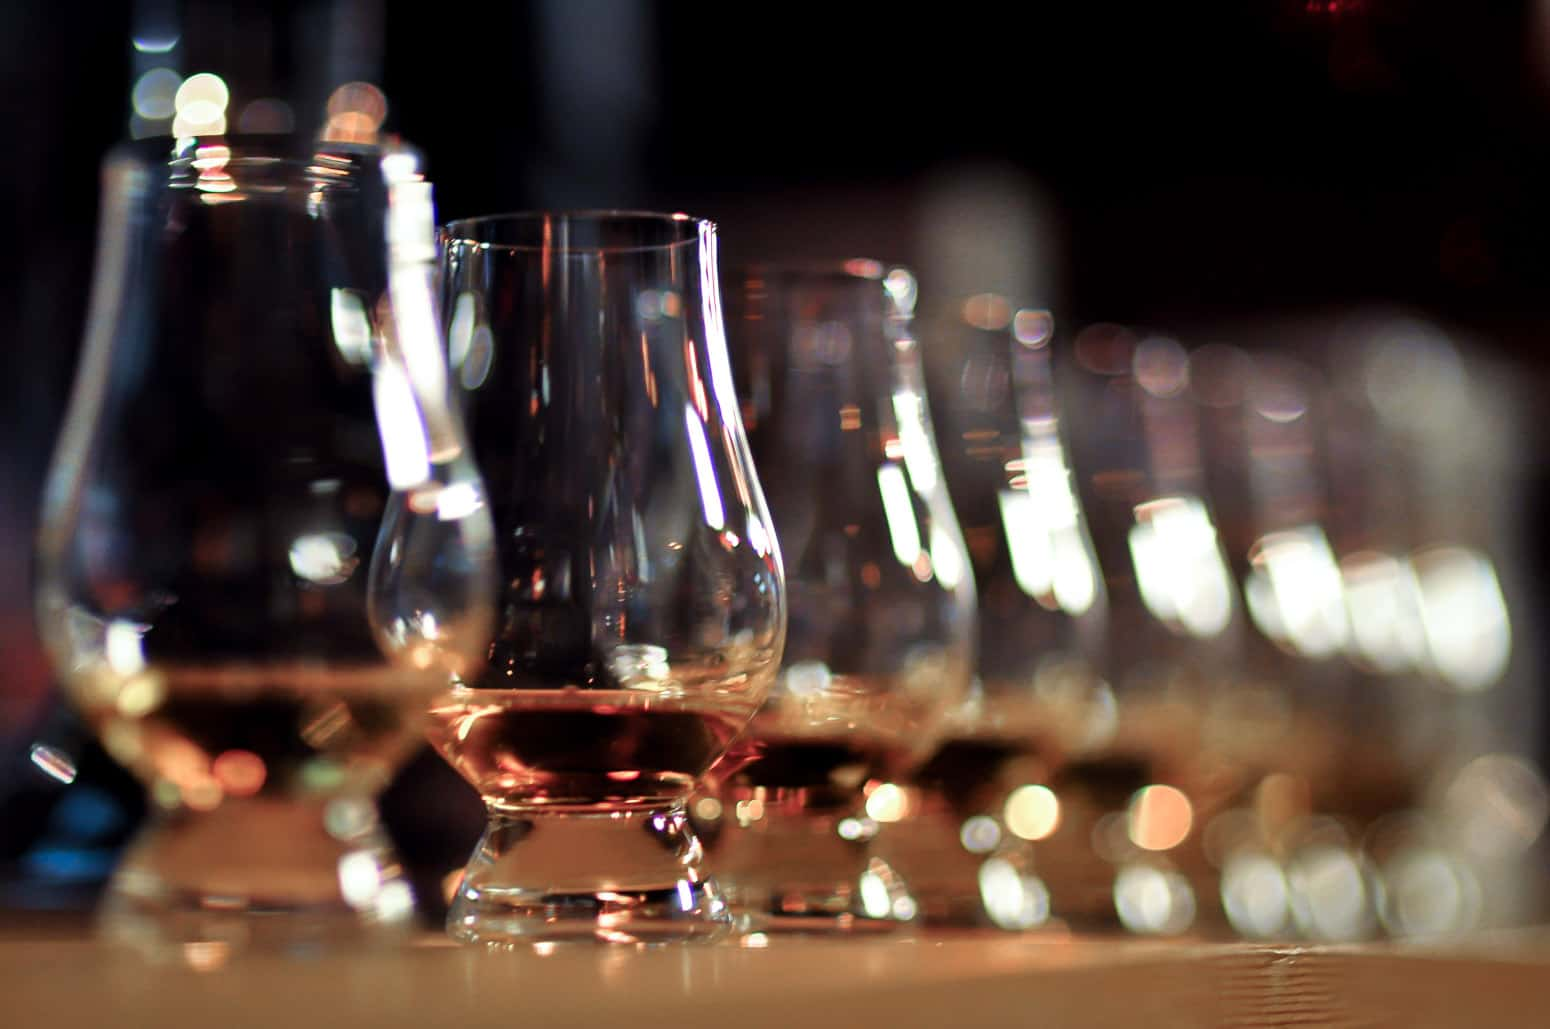 Whisky Tasting | Want to Know More? | Hartleys Events